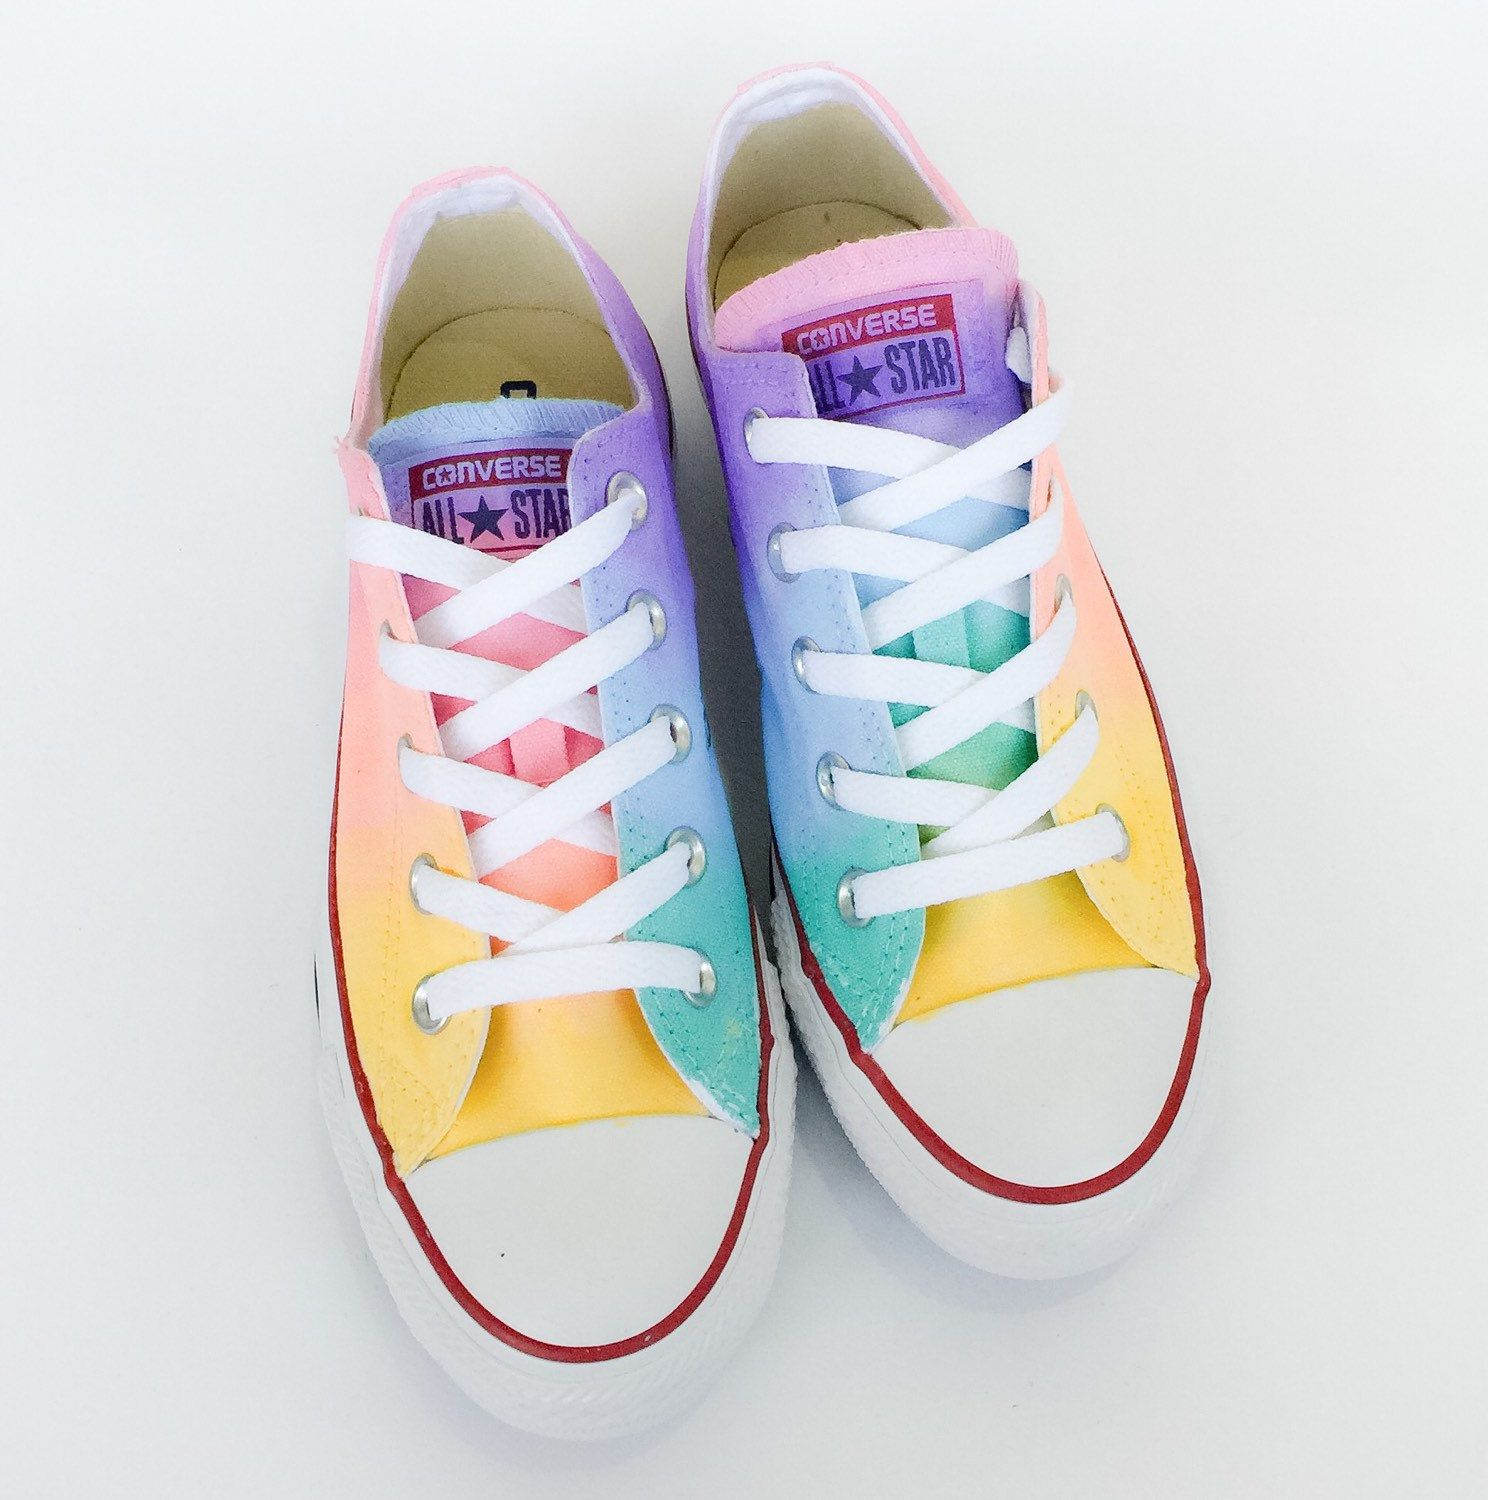 290b03644e07 The softer side of the rainbow is here in the pastel tie dyed low top  Converse! A unique hand painted pastel rainbow tie dye ombré color blend